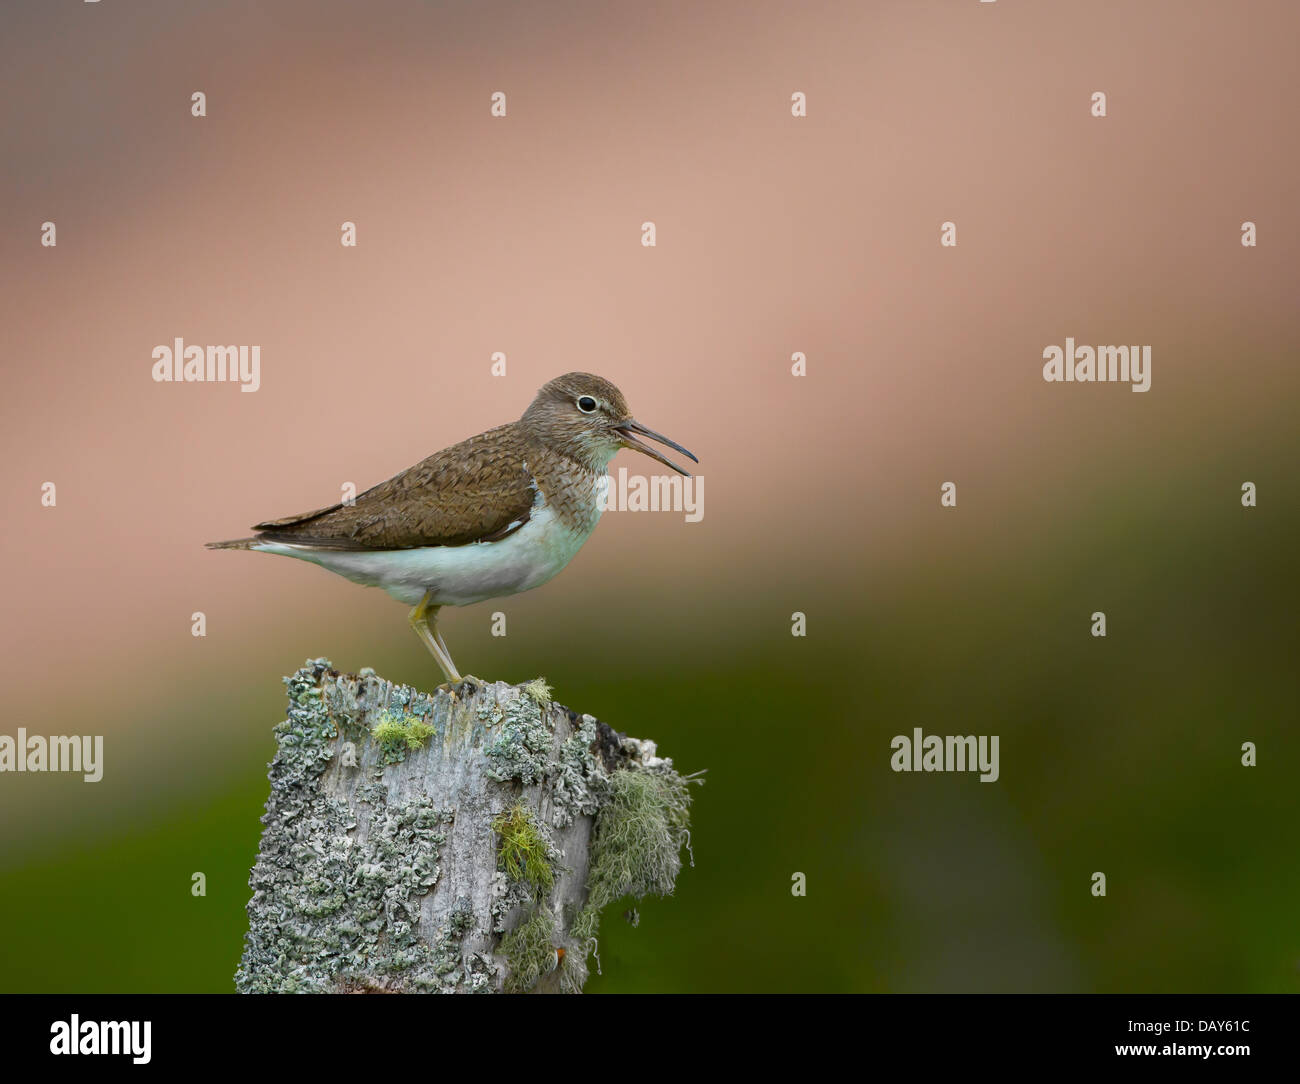 Common Sandpiper sitting on a fencepost - Stock Image